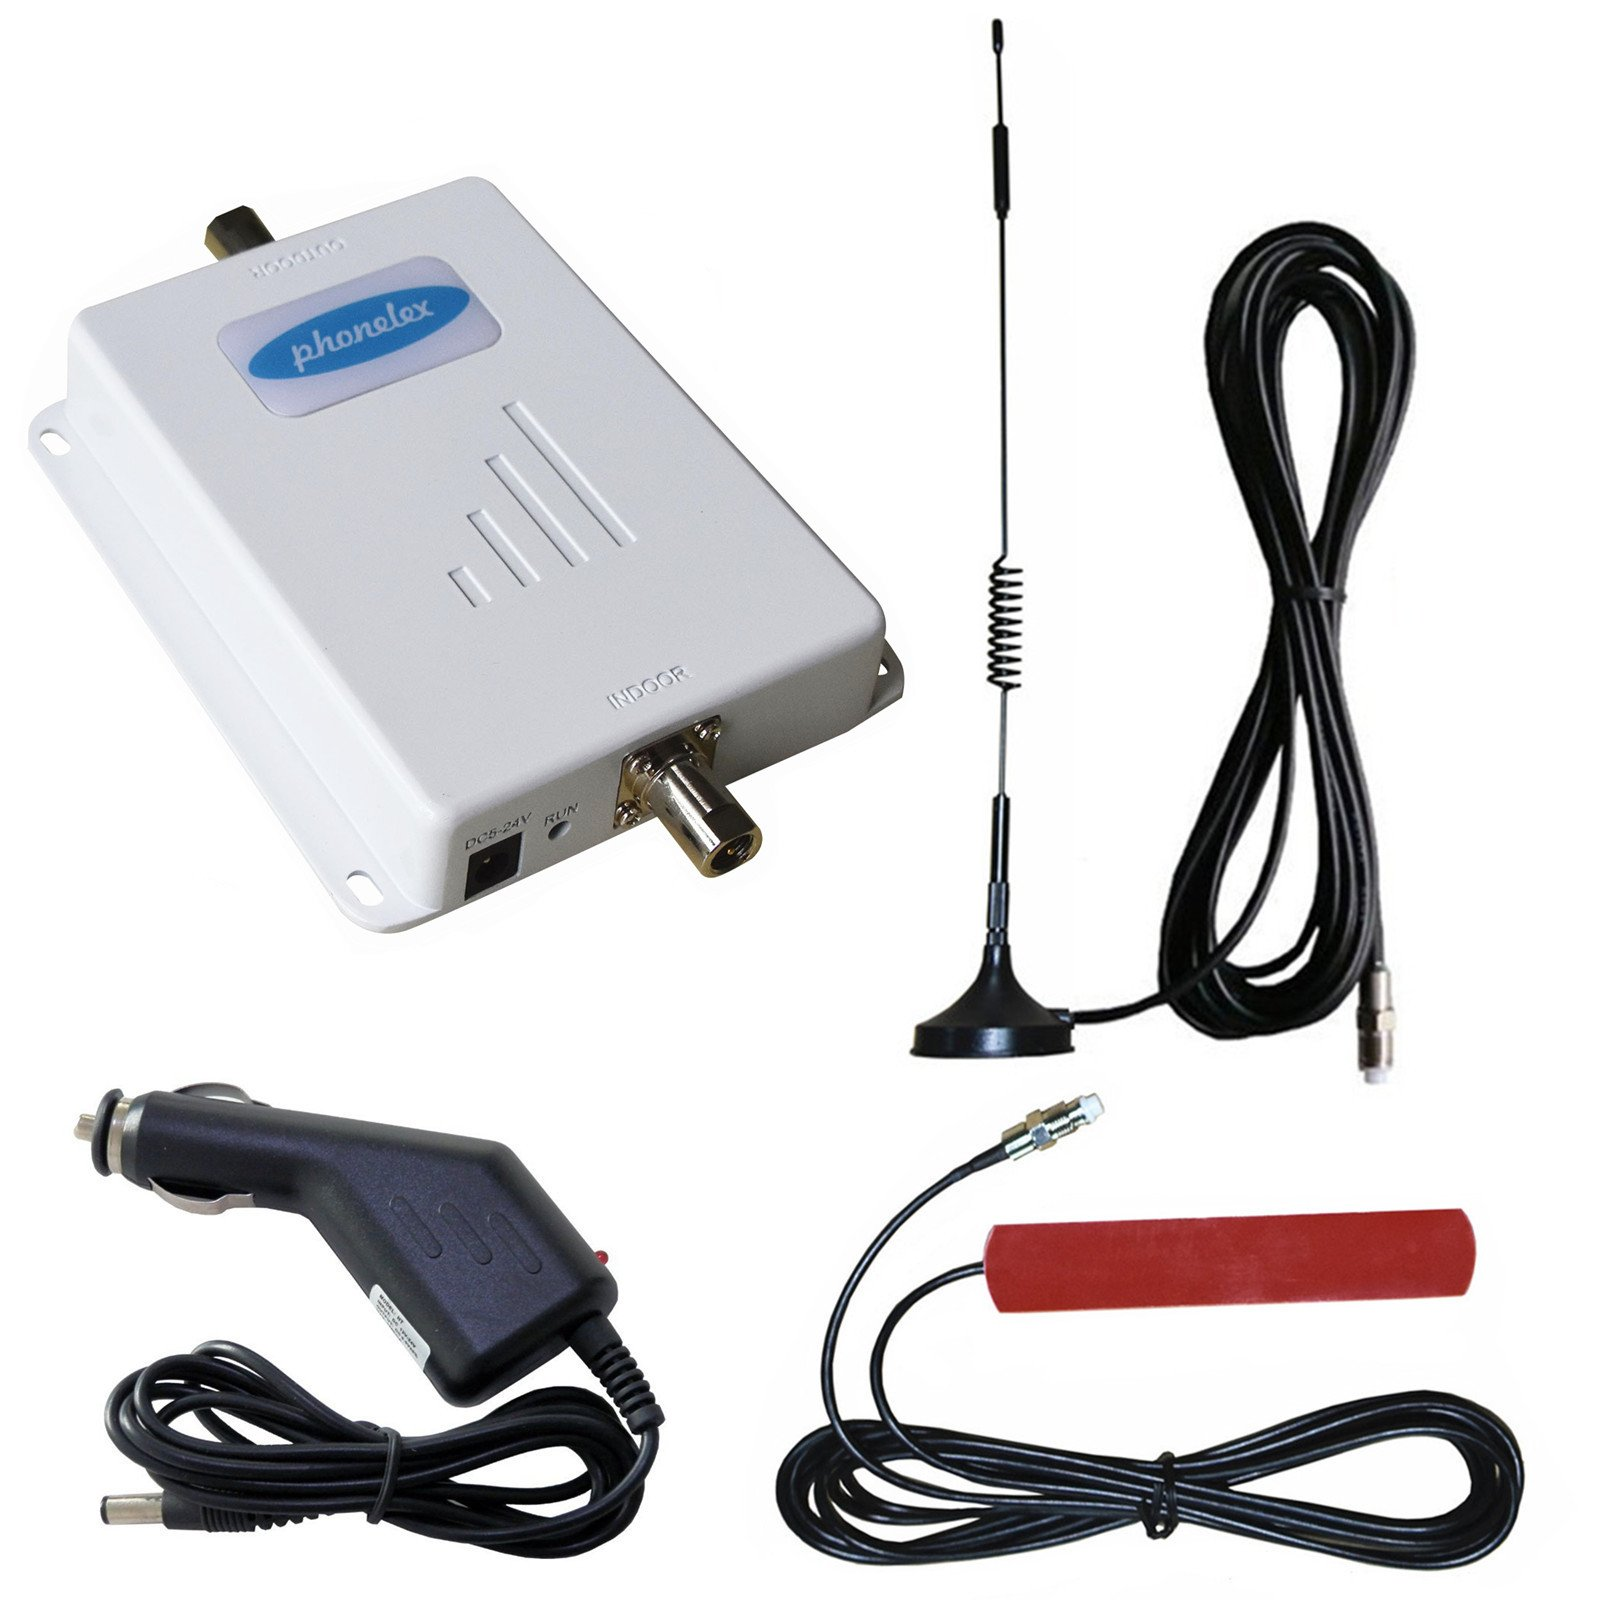 Cheap Mobile Internet Signal Booster, find Mobile Internet Signal